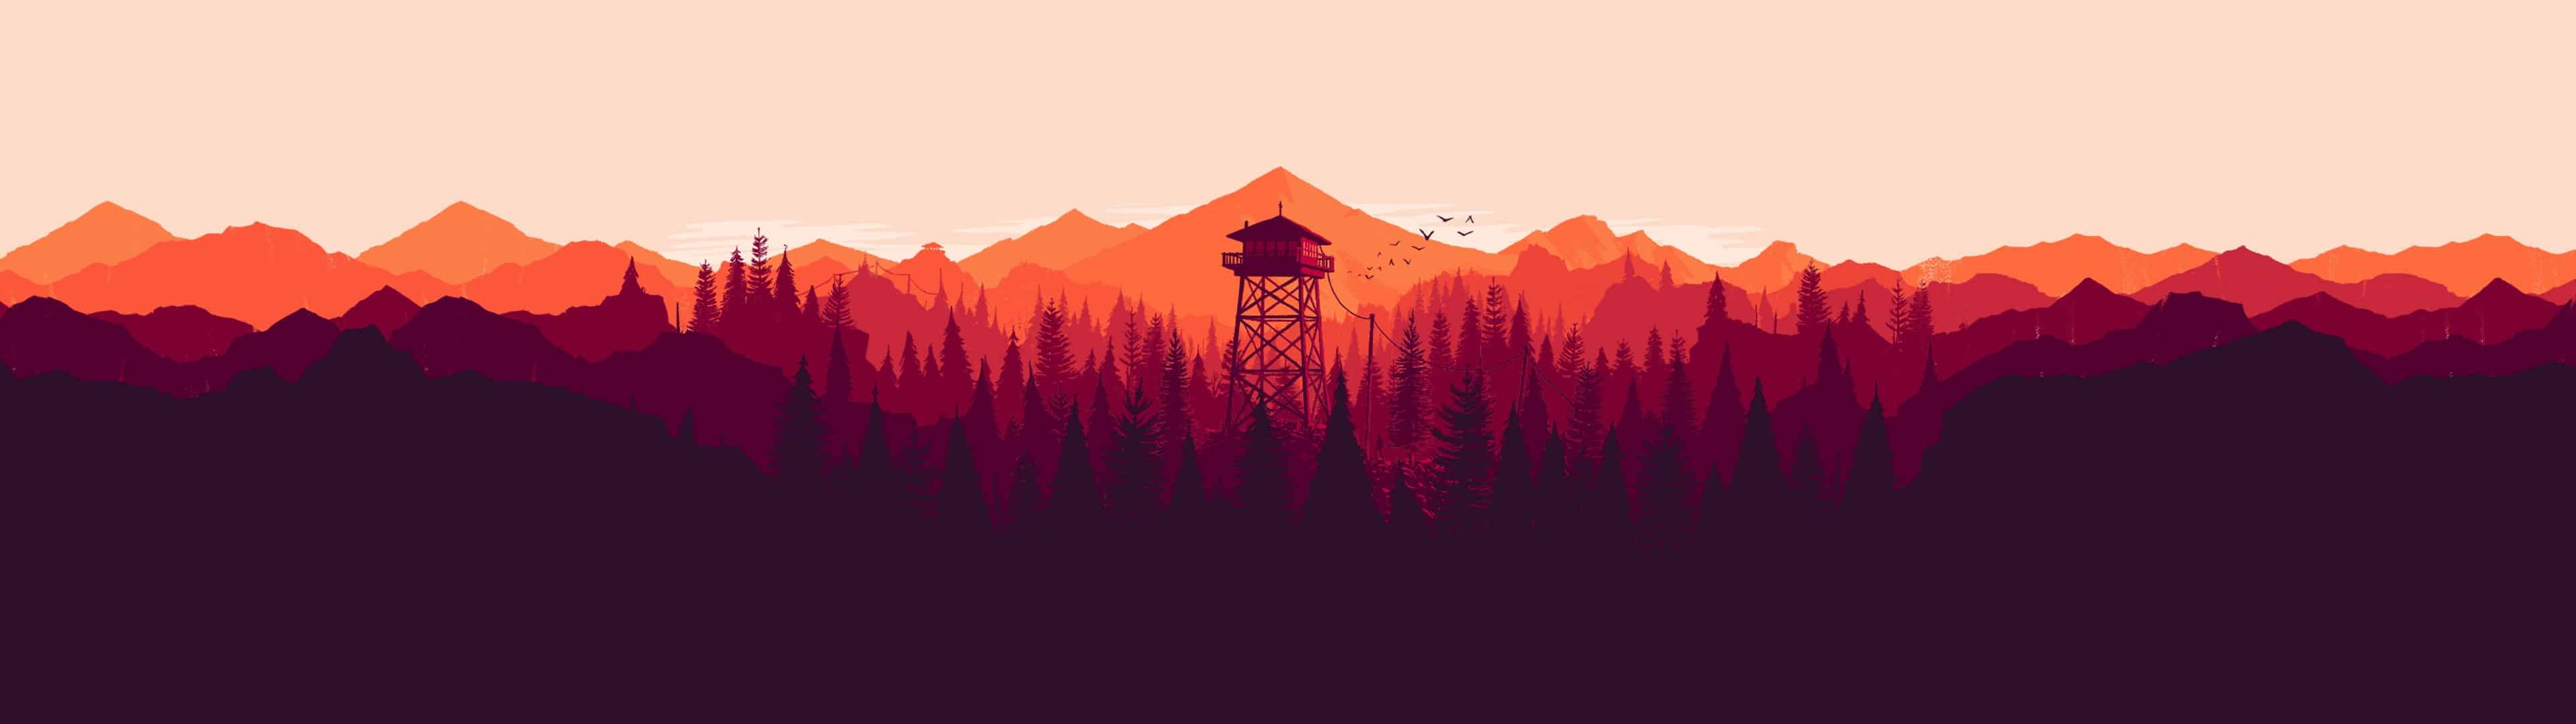 Firewatch Cover Dual Monitor Wallpaper Pixelz